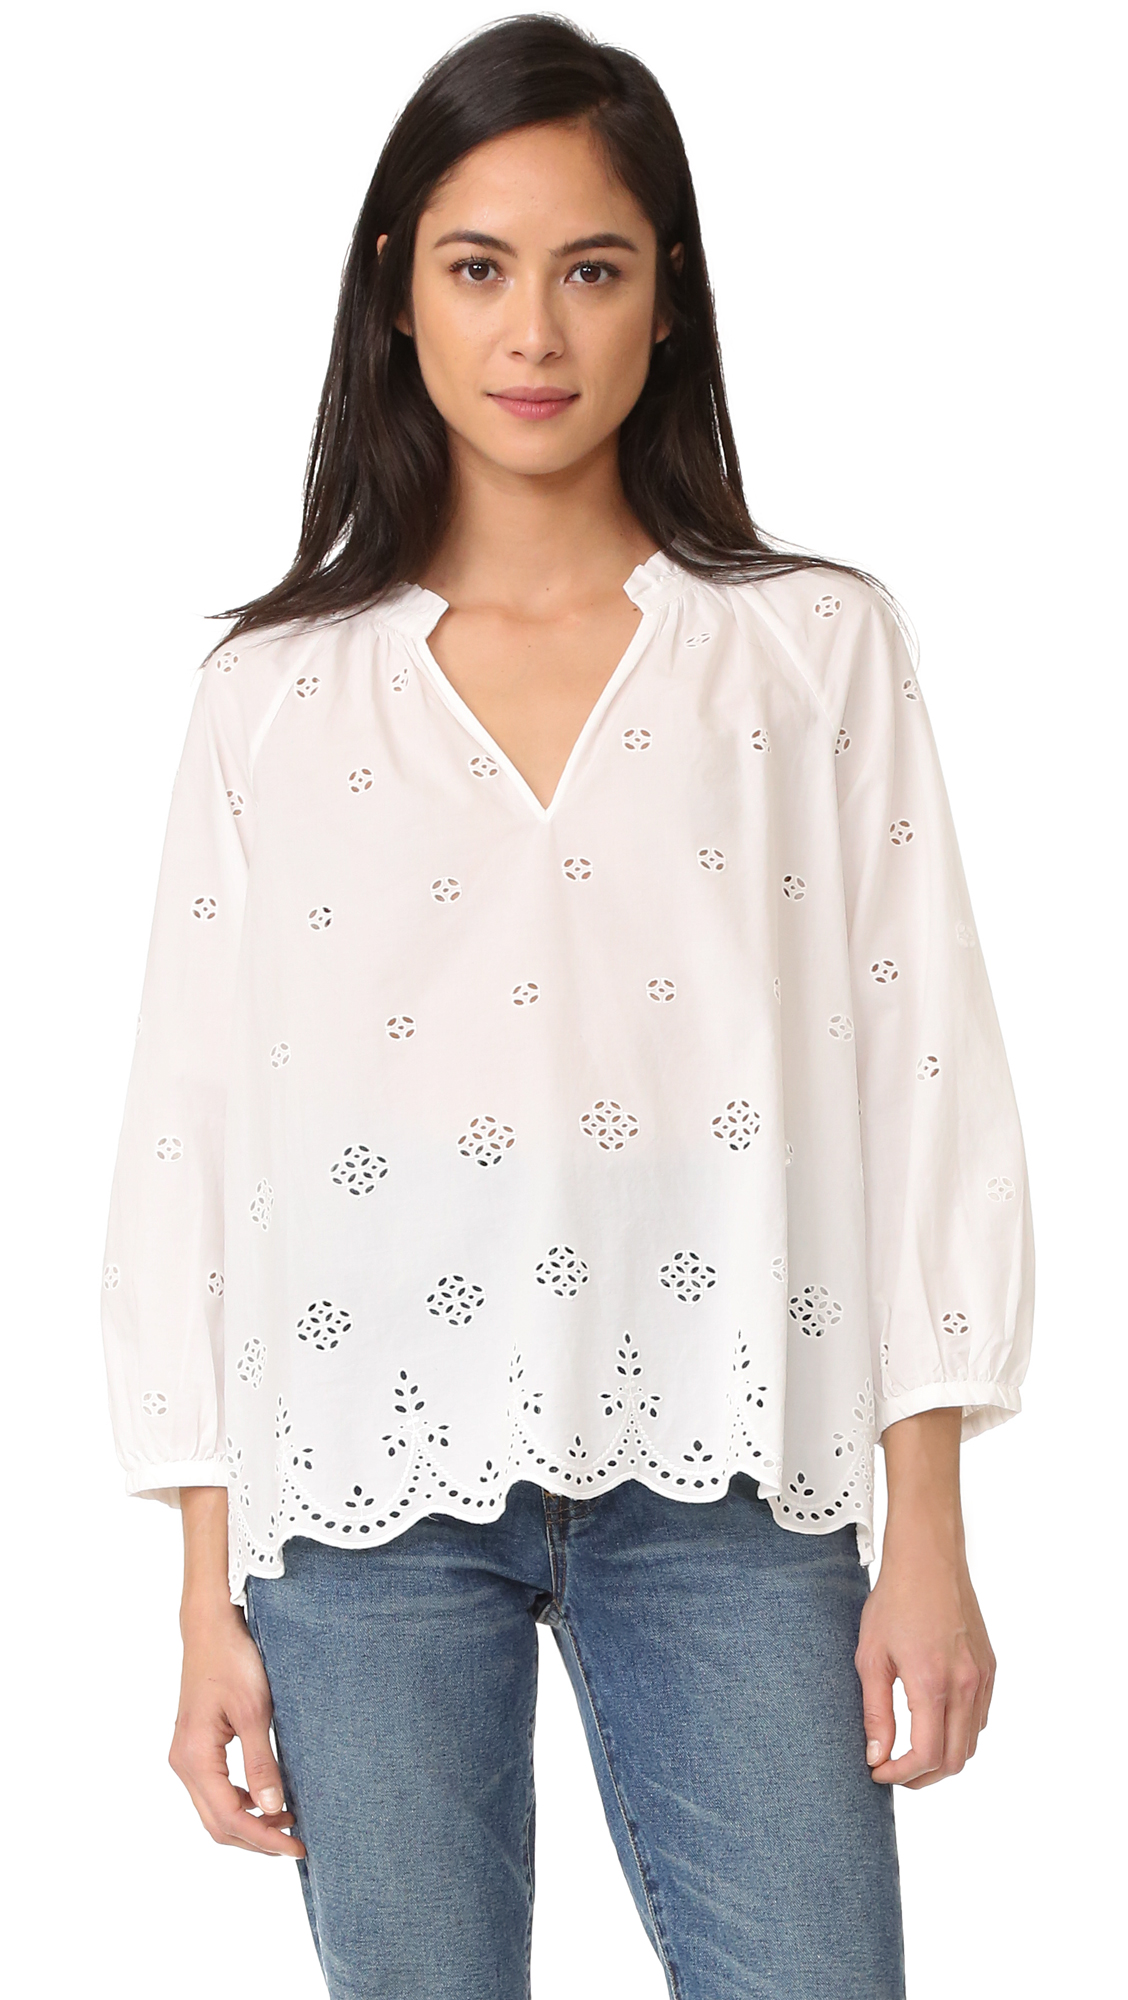 Madewell Eyelet Blouse With Scallop Hem Shopbop